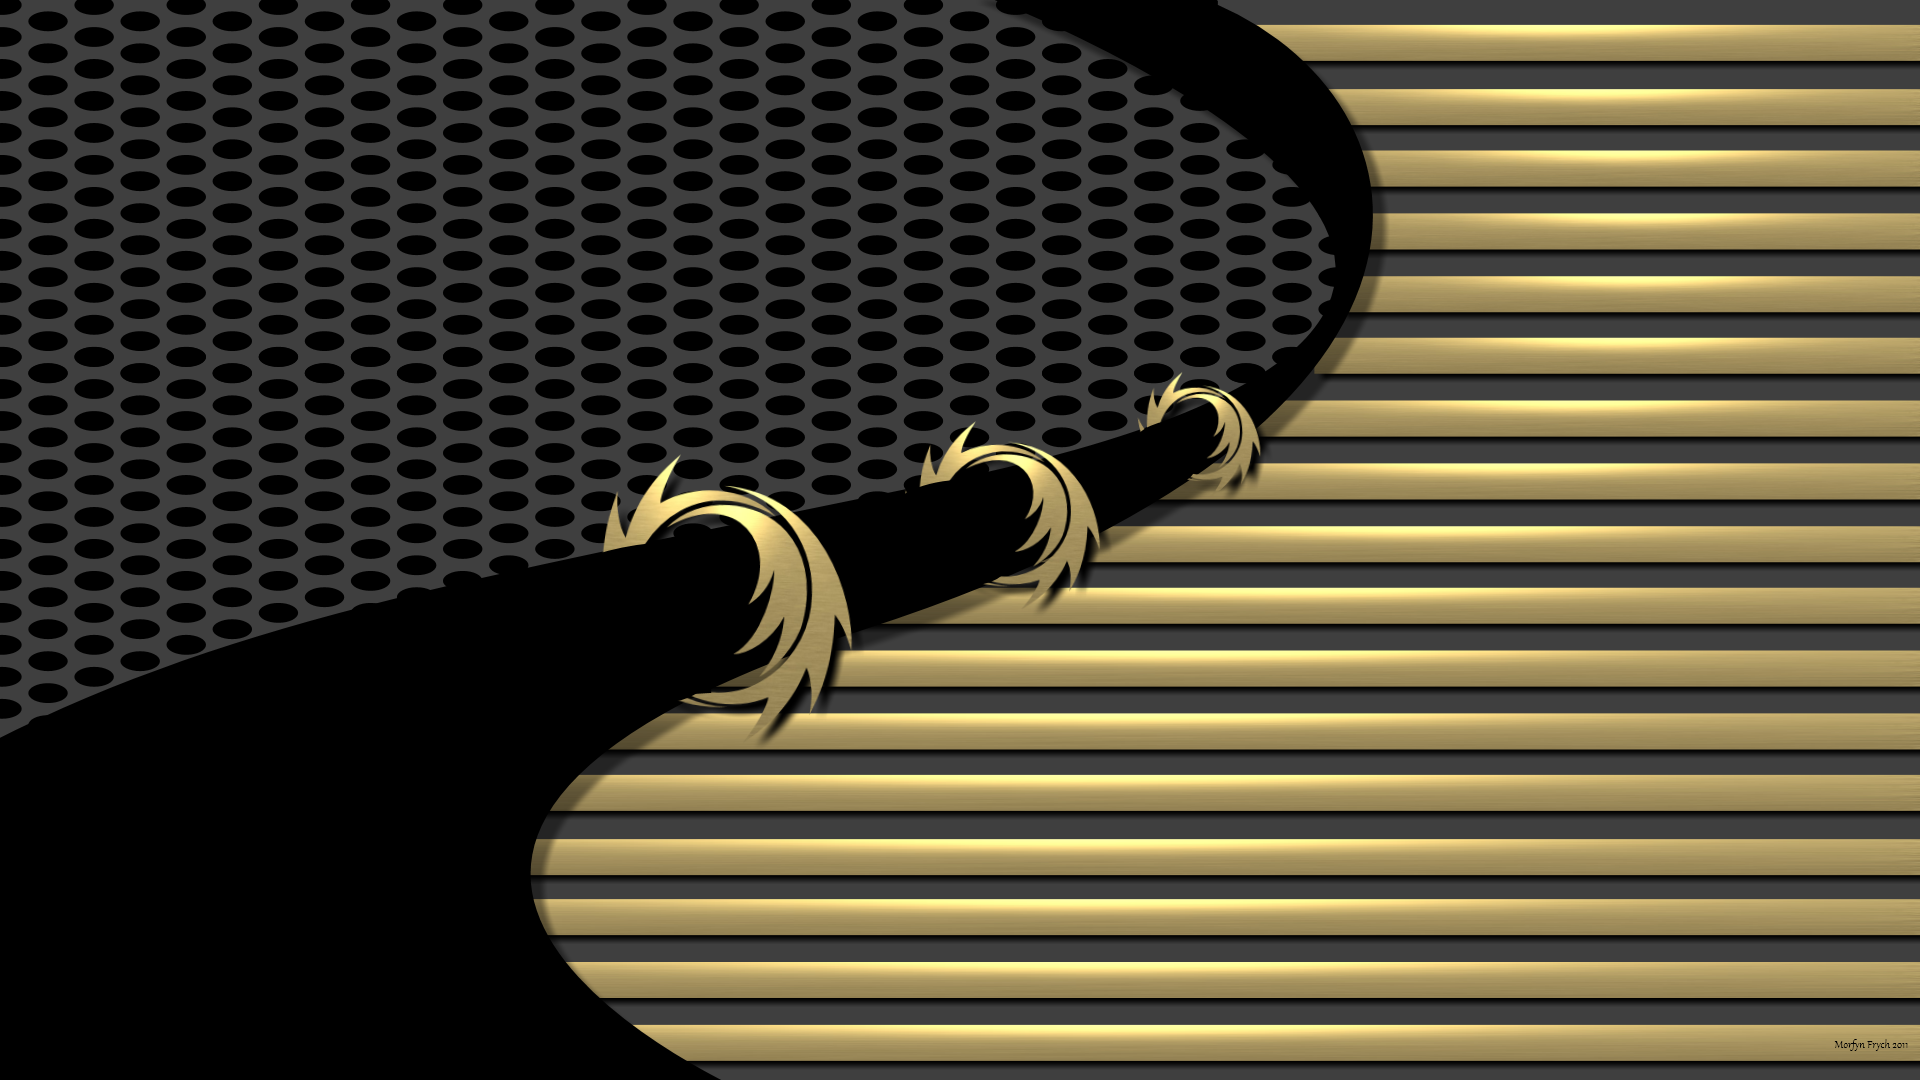 Gold And Black Wallpapers Wallpaper Ca 935140 Png Images Pngio